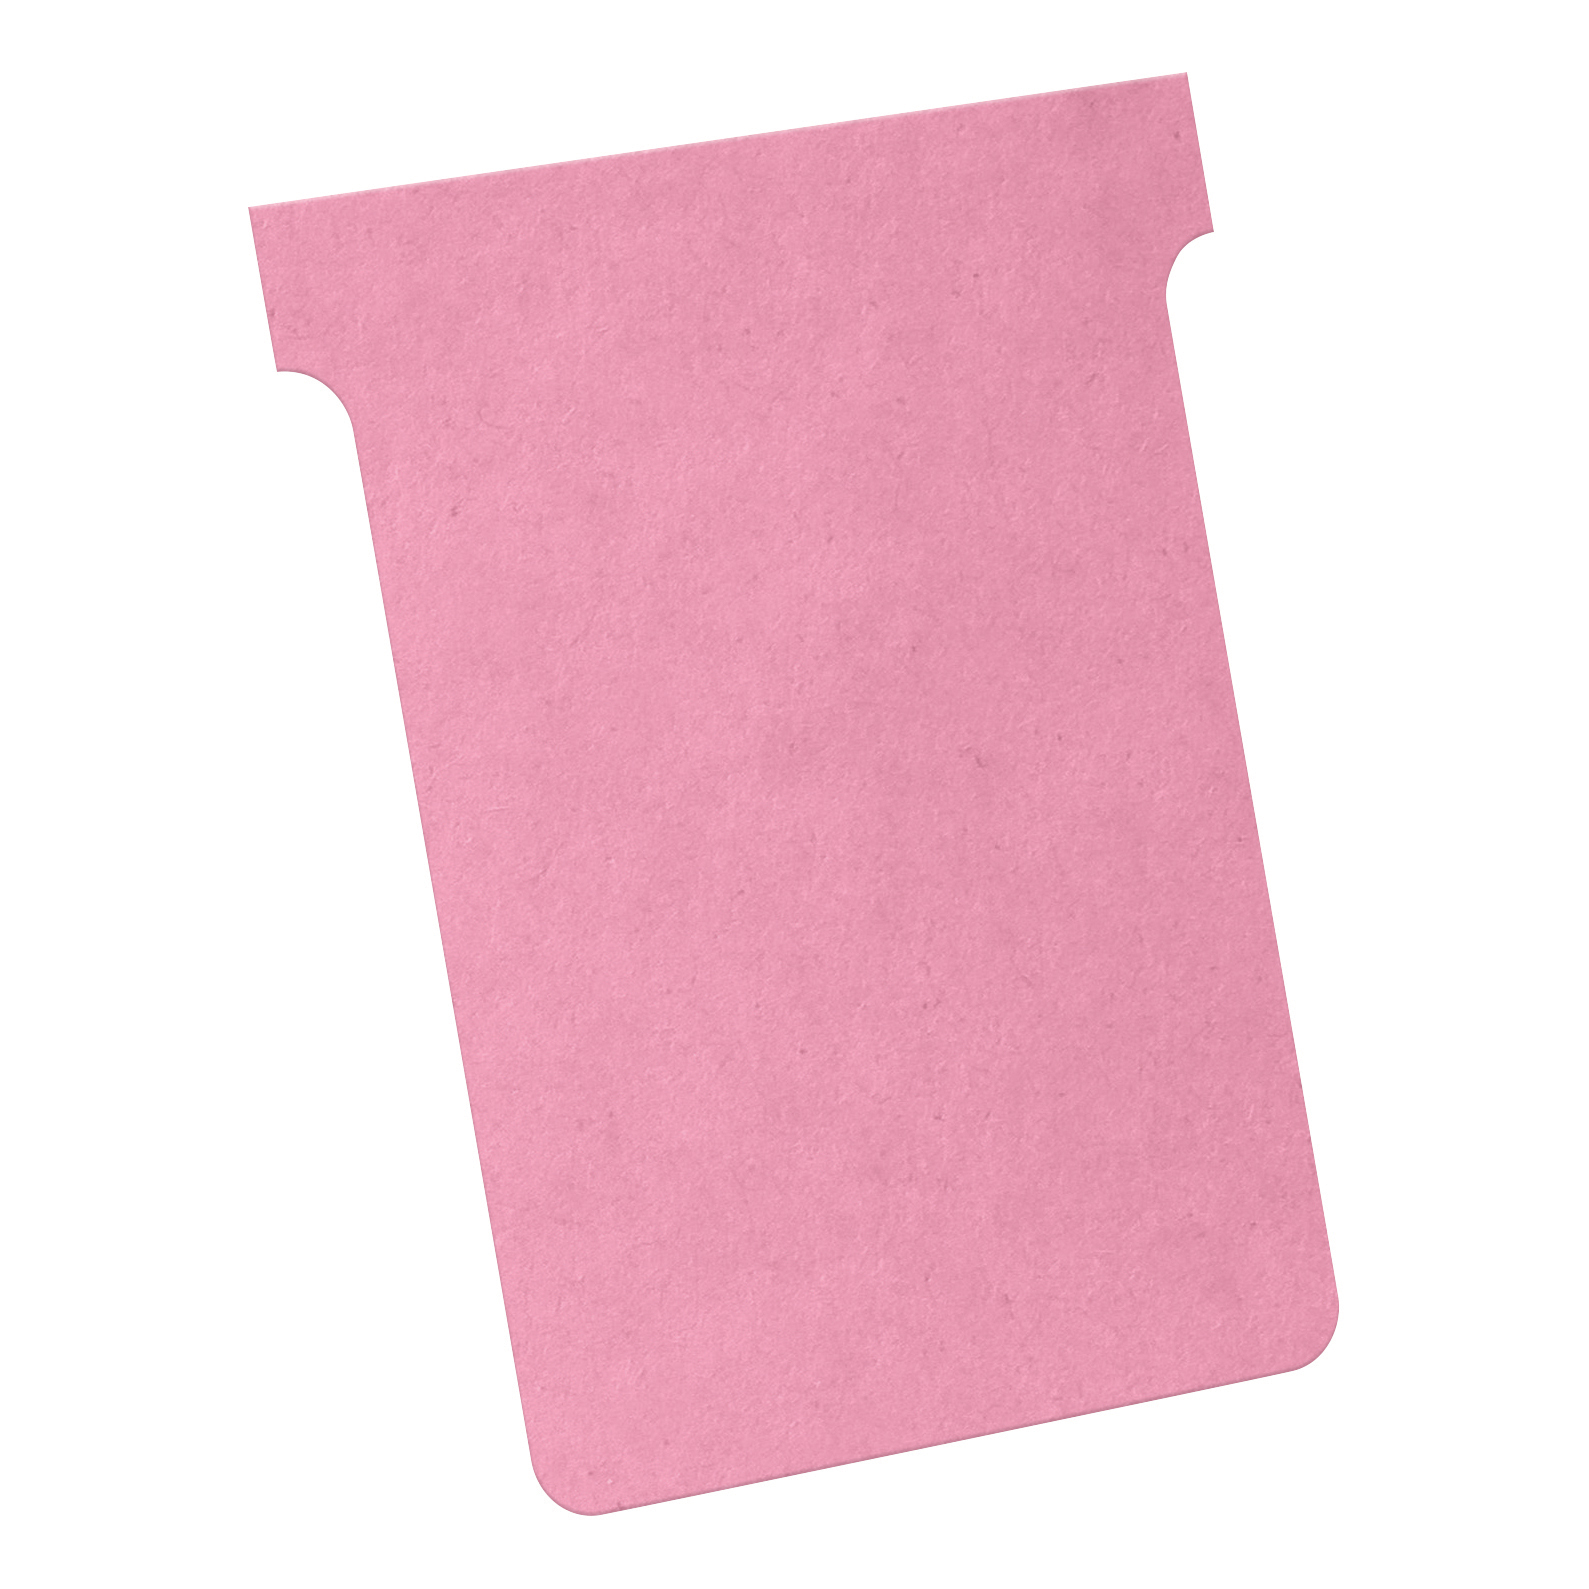 T Cards Nobo T-Cards 160gsm Tab Top 15mm W92x Bottom W80x Full H120mm Size 3 Pink Ref 2003008 Pack 100